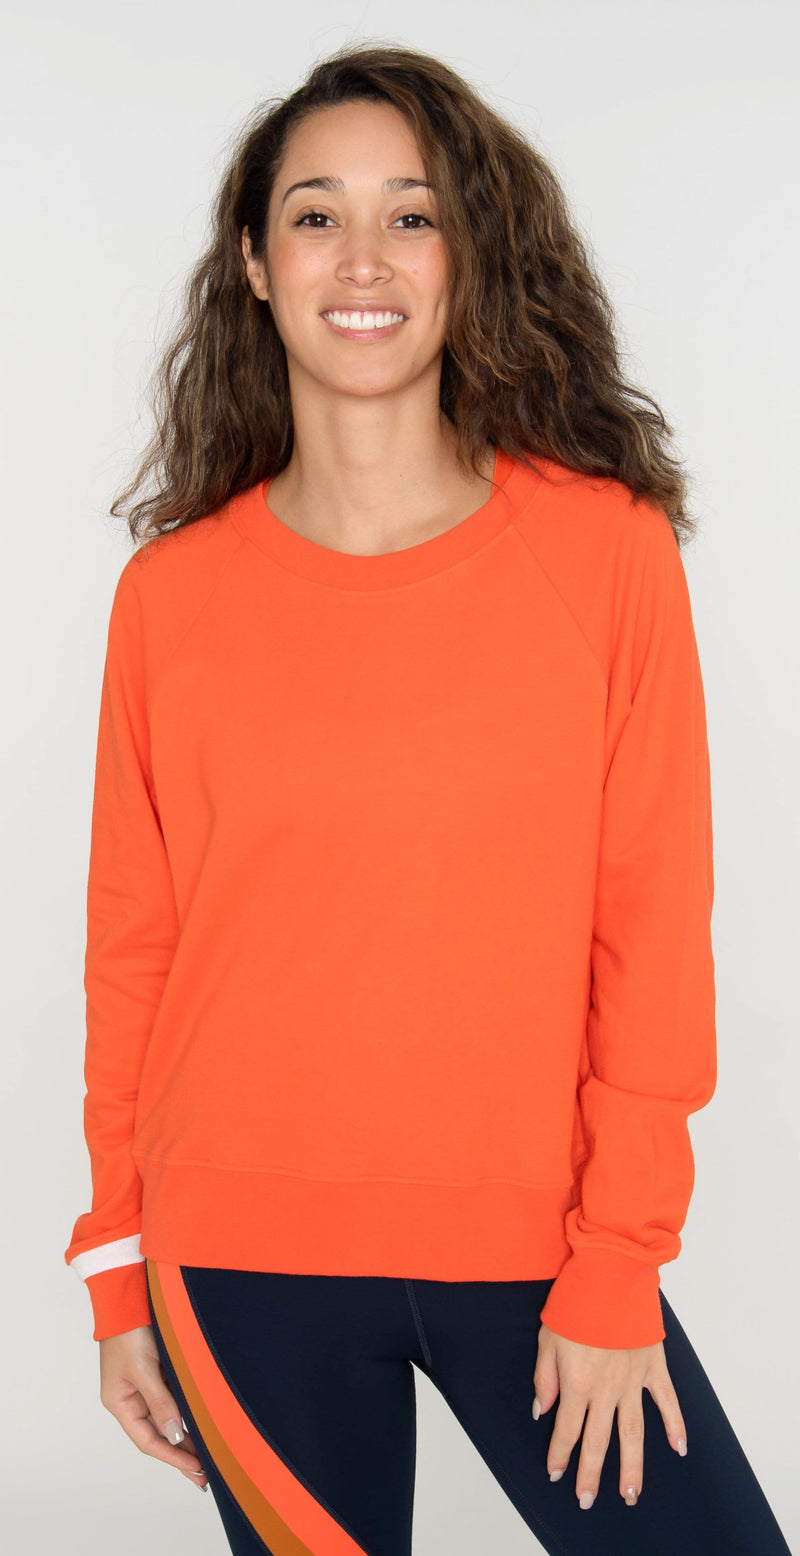 Splits59 Cleo Sweatshirt Orange/Off White